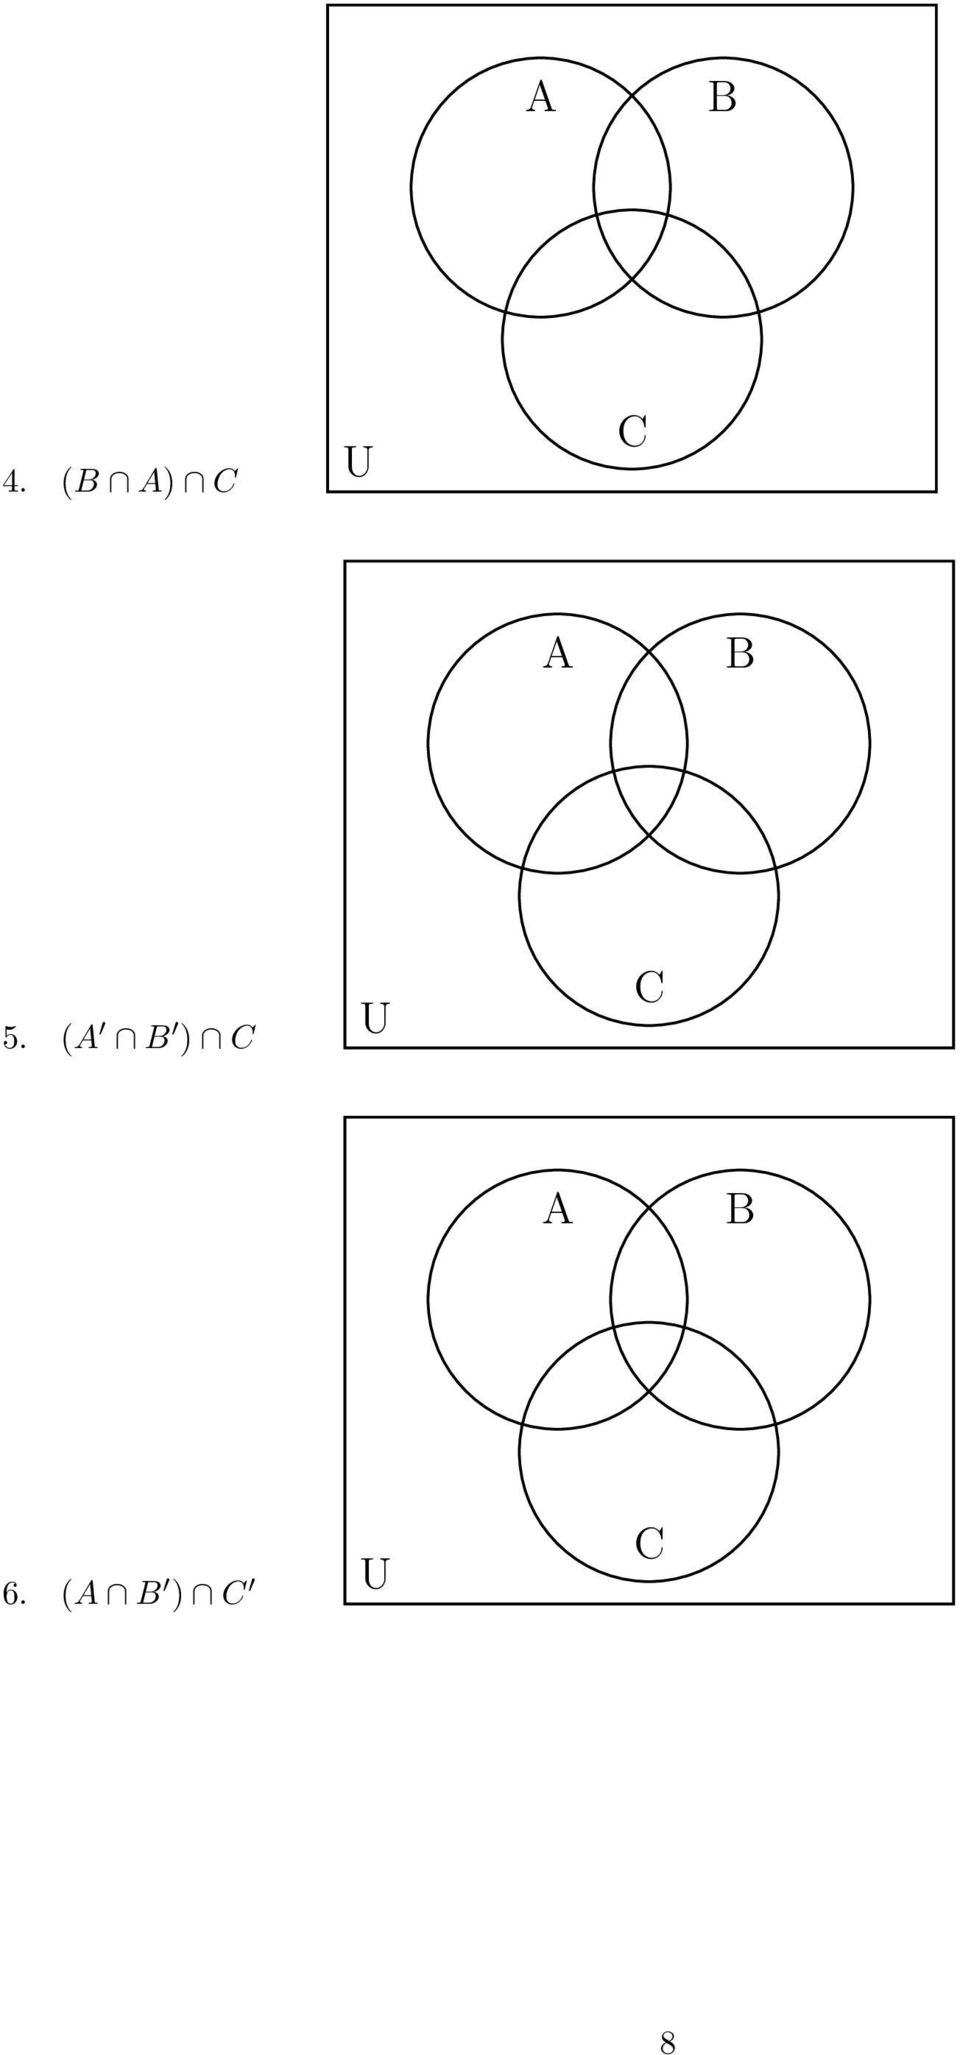 medium resolution of  the cardinal number formula for any two sets and n n n n examples 1 se the numerals representing the cardinalities in the venn diagrams